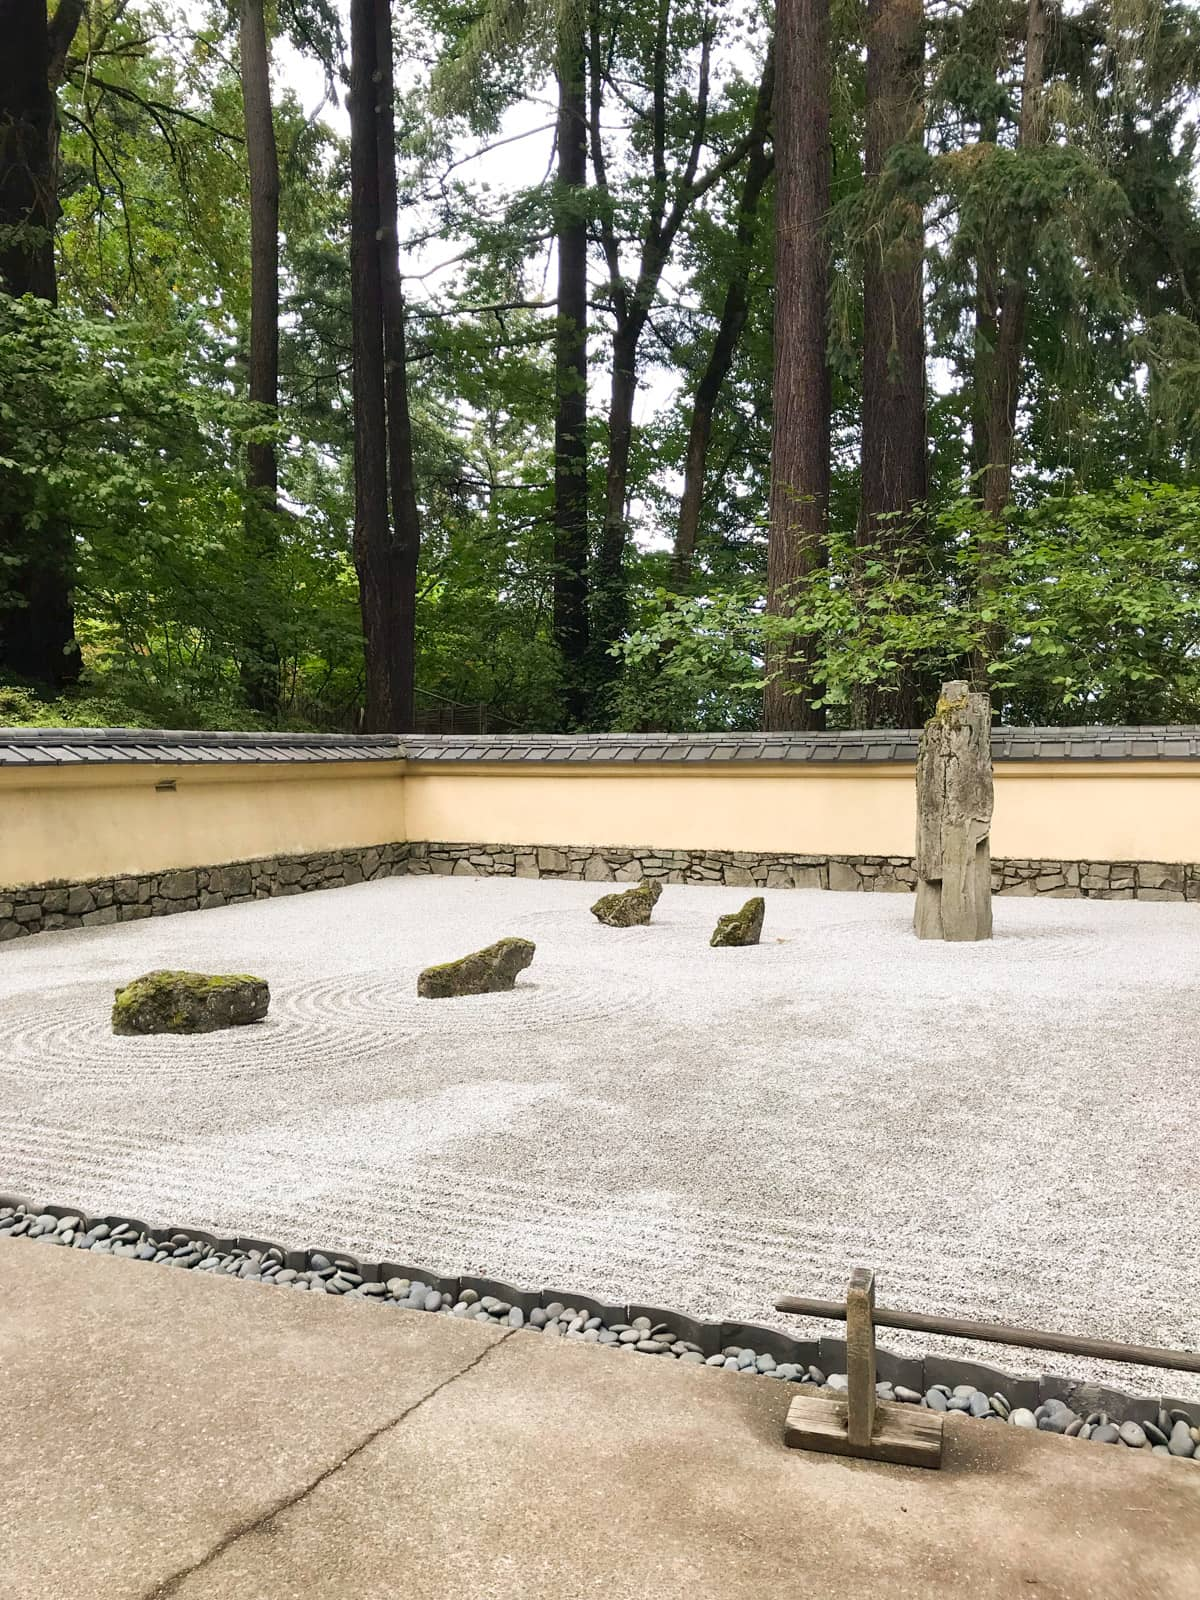 A Japanese zen garden covered with pebbles. Some rocks feature on the pebbles, in a neat formation